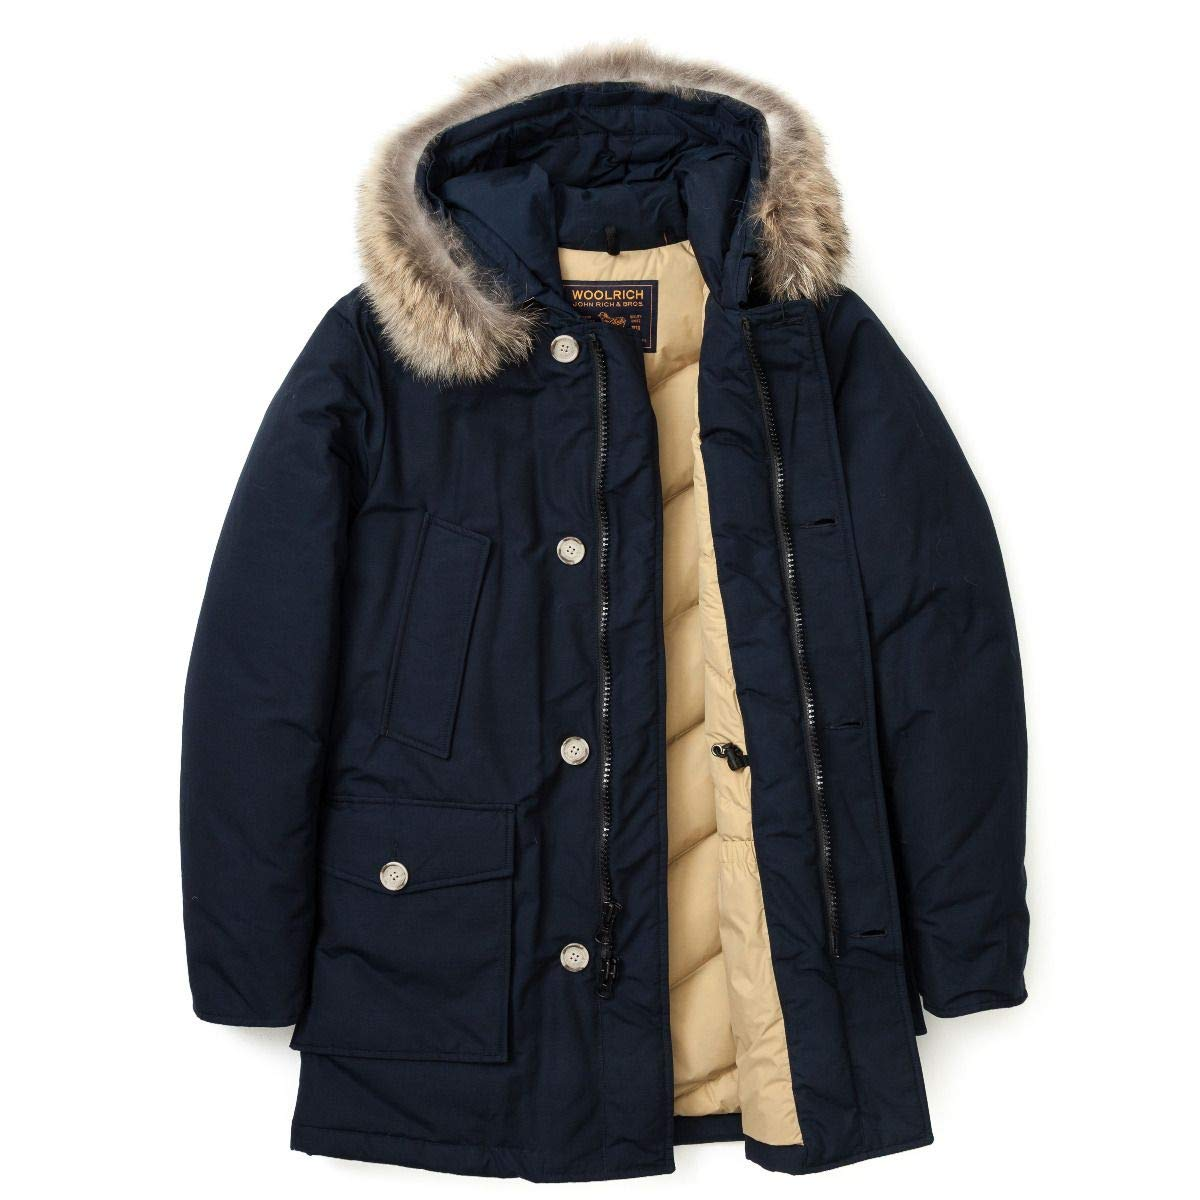 WOOLRICH WOCPS1674-CN01-MLB Arctic Parka DF MELTON BLUE (blu navy) Marche Famose